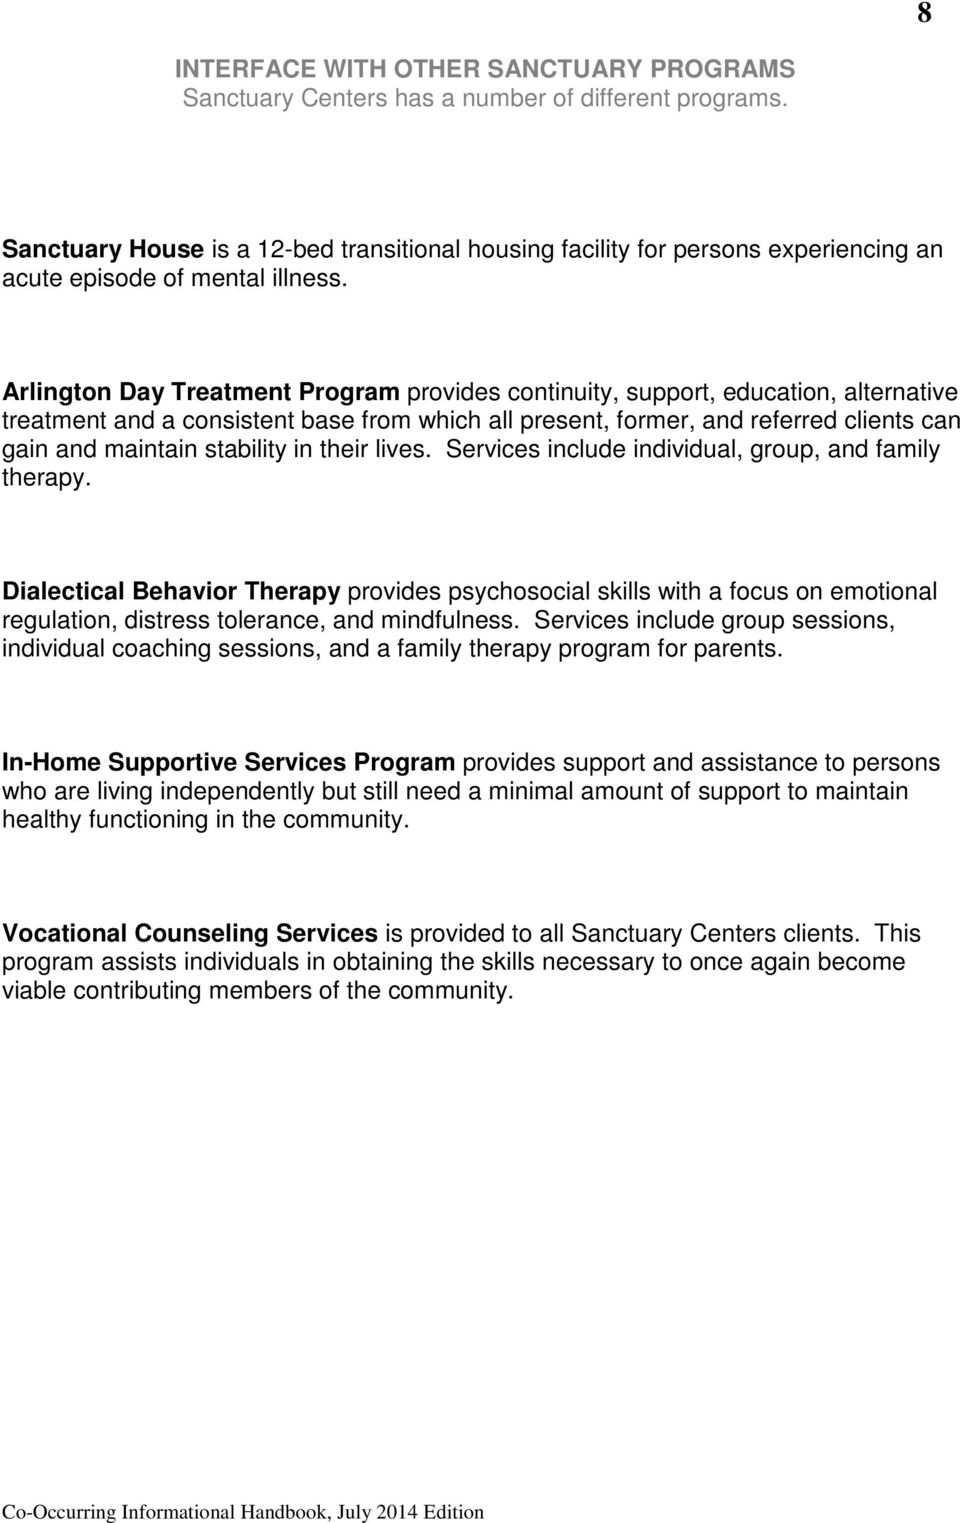 Arlington Day Treatment Program provides continuity, support, education, alternative treatment and a consistent base from which all present, former, and referred clients can gain and maintain